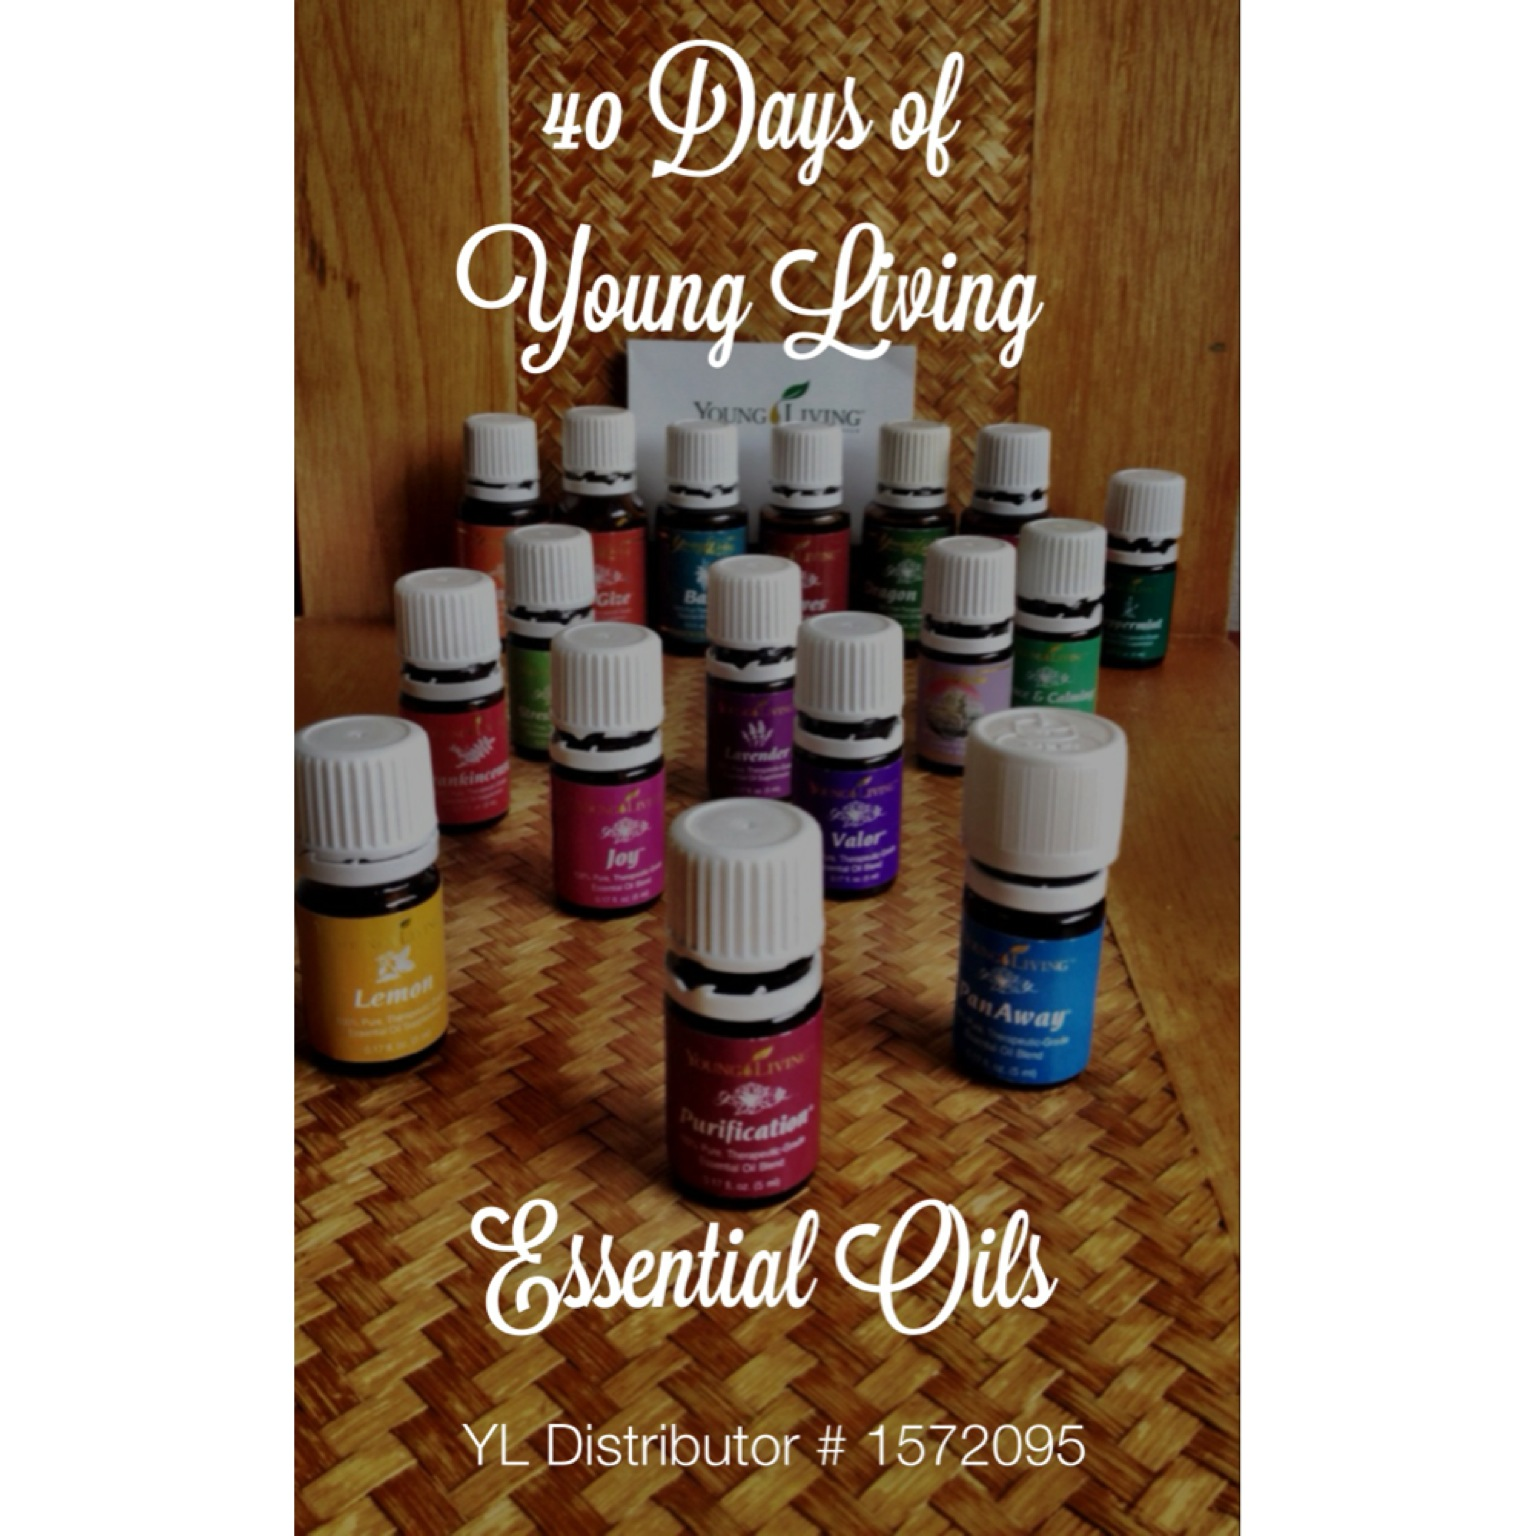 40 Days of Young Living Essential Oils